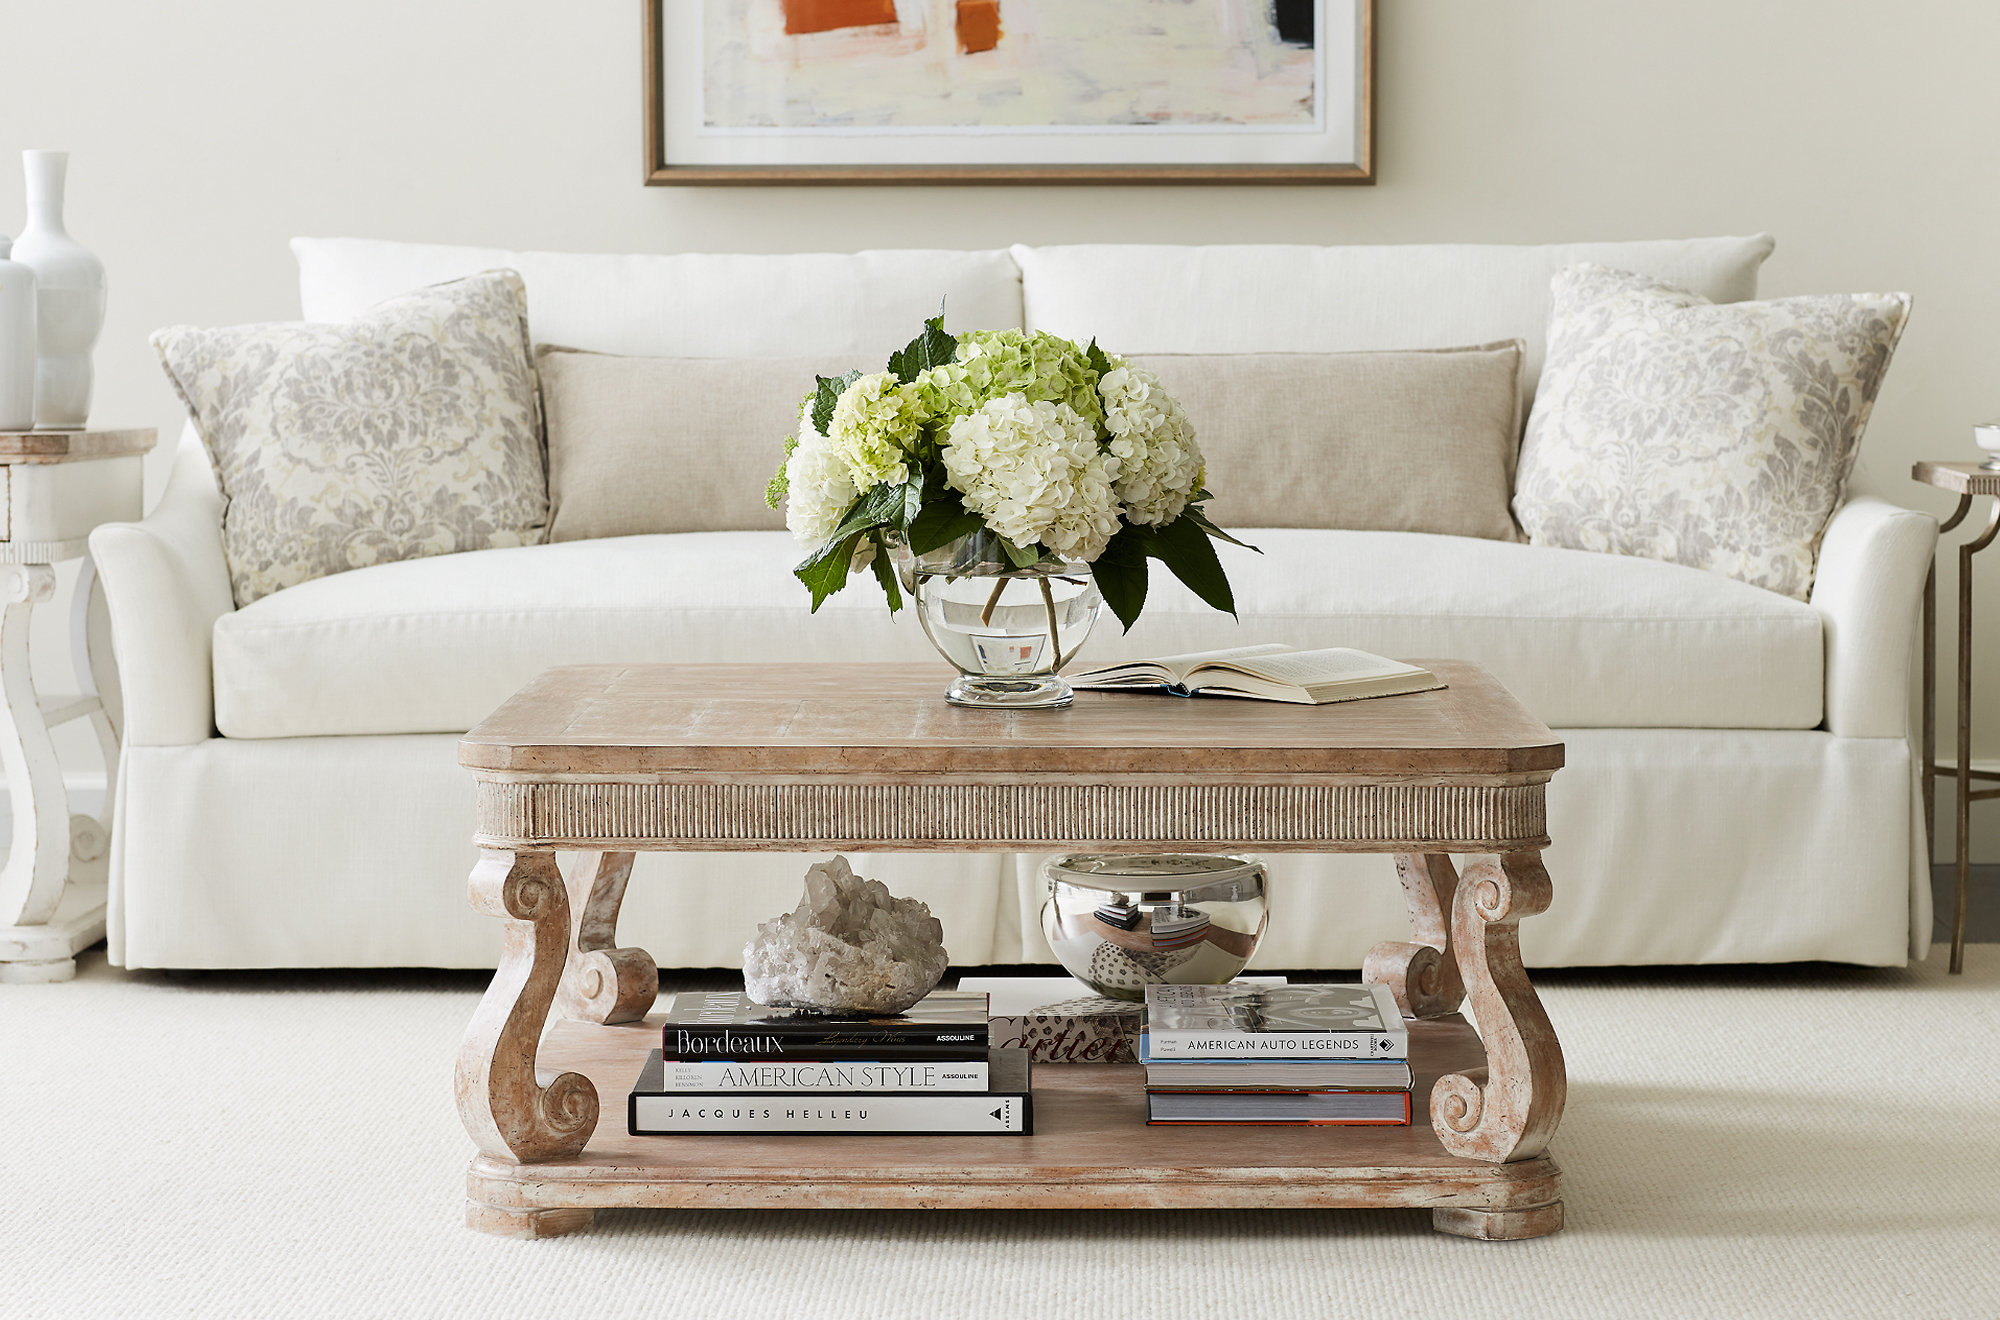 Juniper Dell coffee table